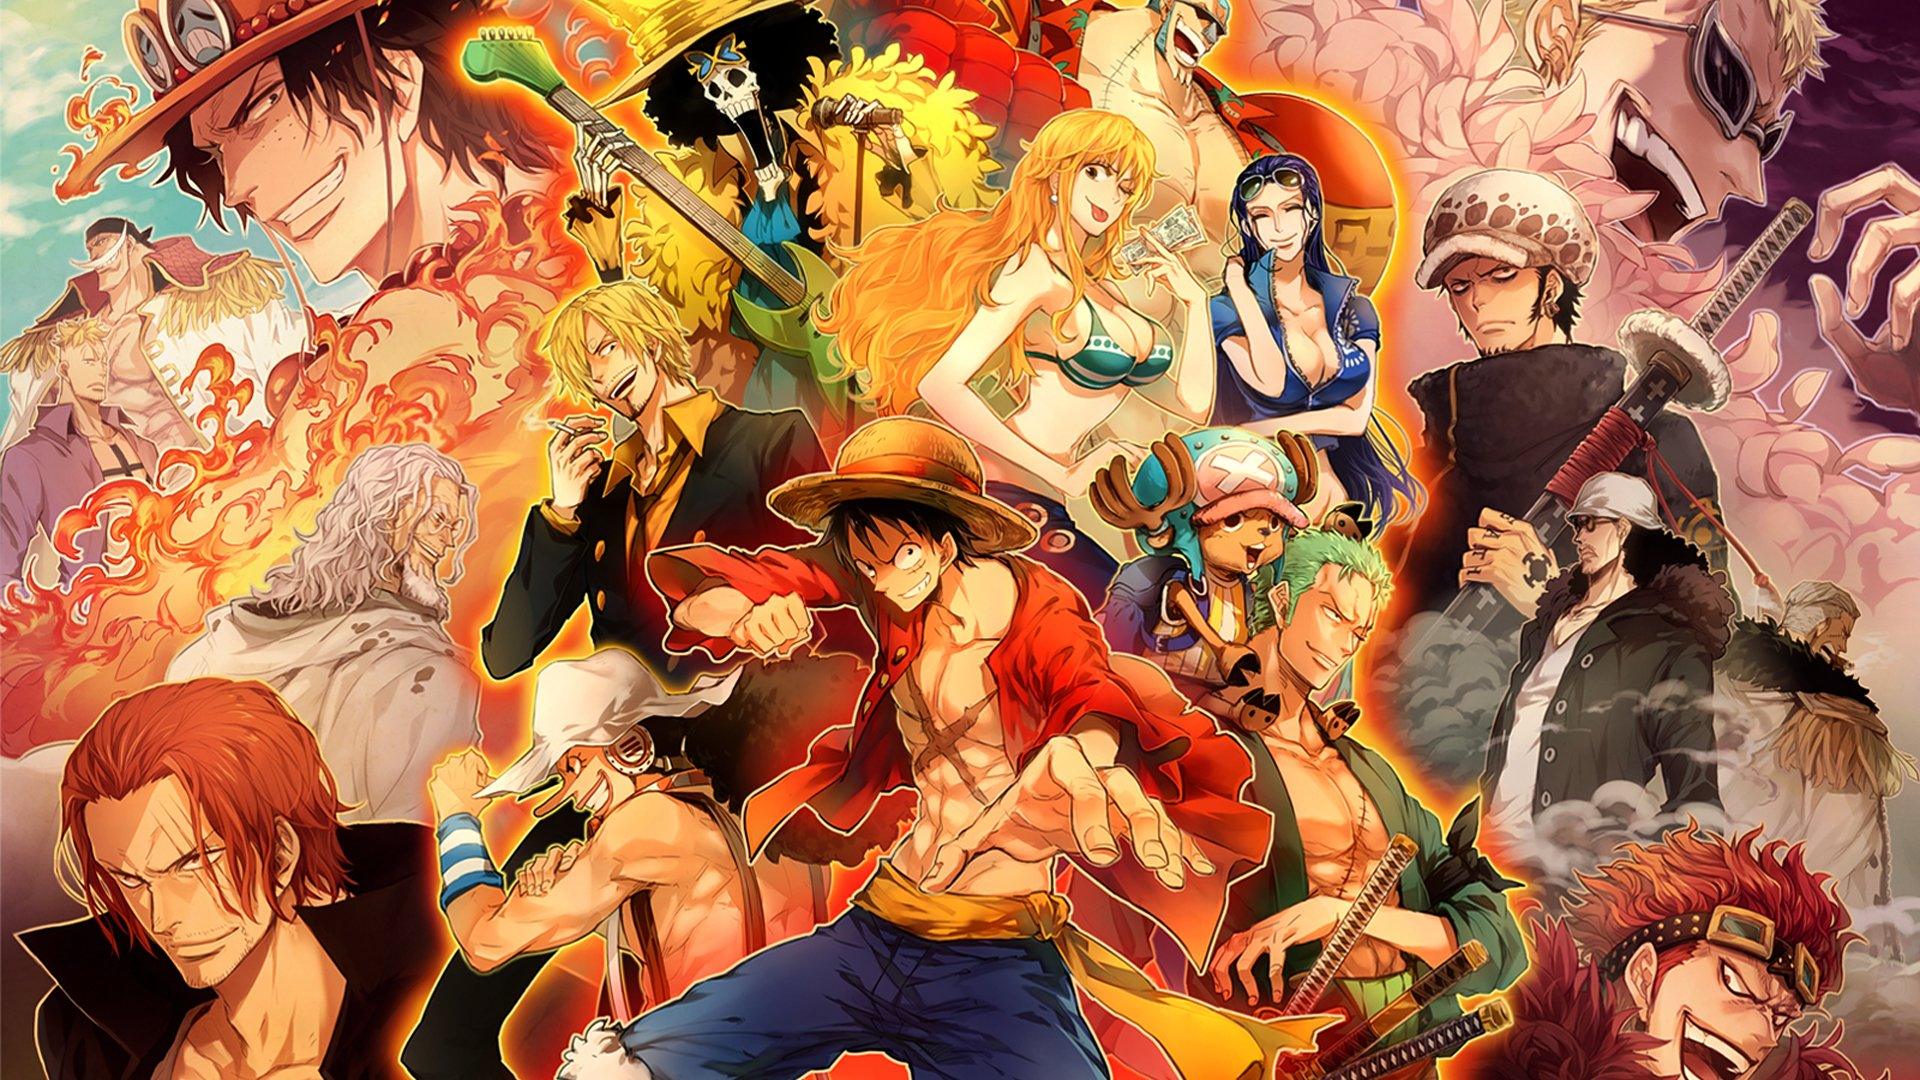 Anime - One Piece  Shanks (One Piece) Edward Newgate Portgas D. Ace Donquixote Doflamingo Trafalgar Law Usopp (One Piece) Monkey D. Luffy Zoro Roronoa Tony Tony Chopper Sanji (One Piece) Nico Robin Nami (One Piece) Brook (One Piece) Franky (One Piece) Wallpaper